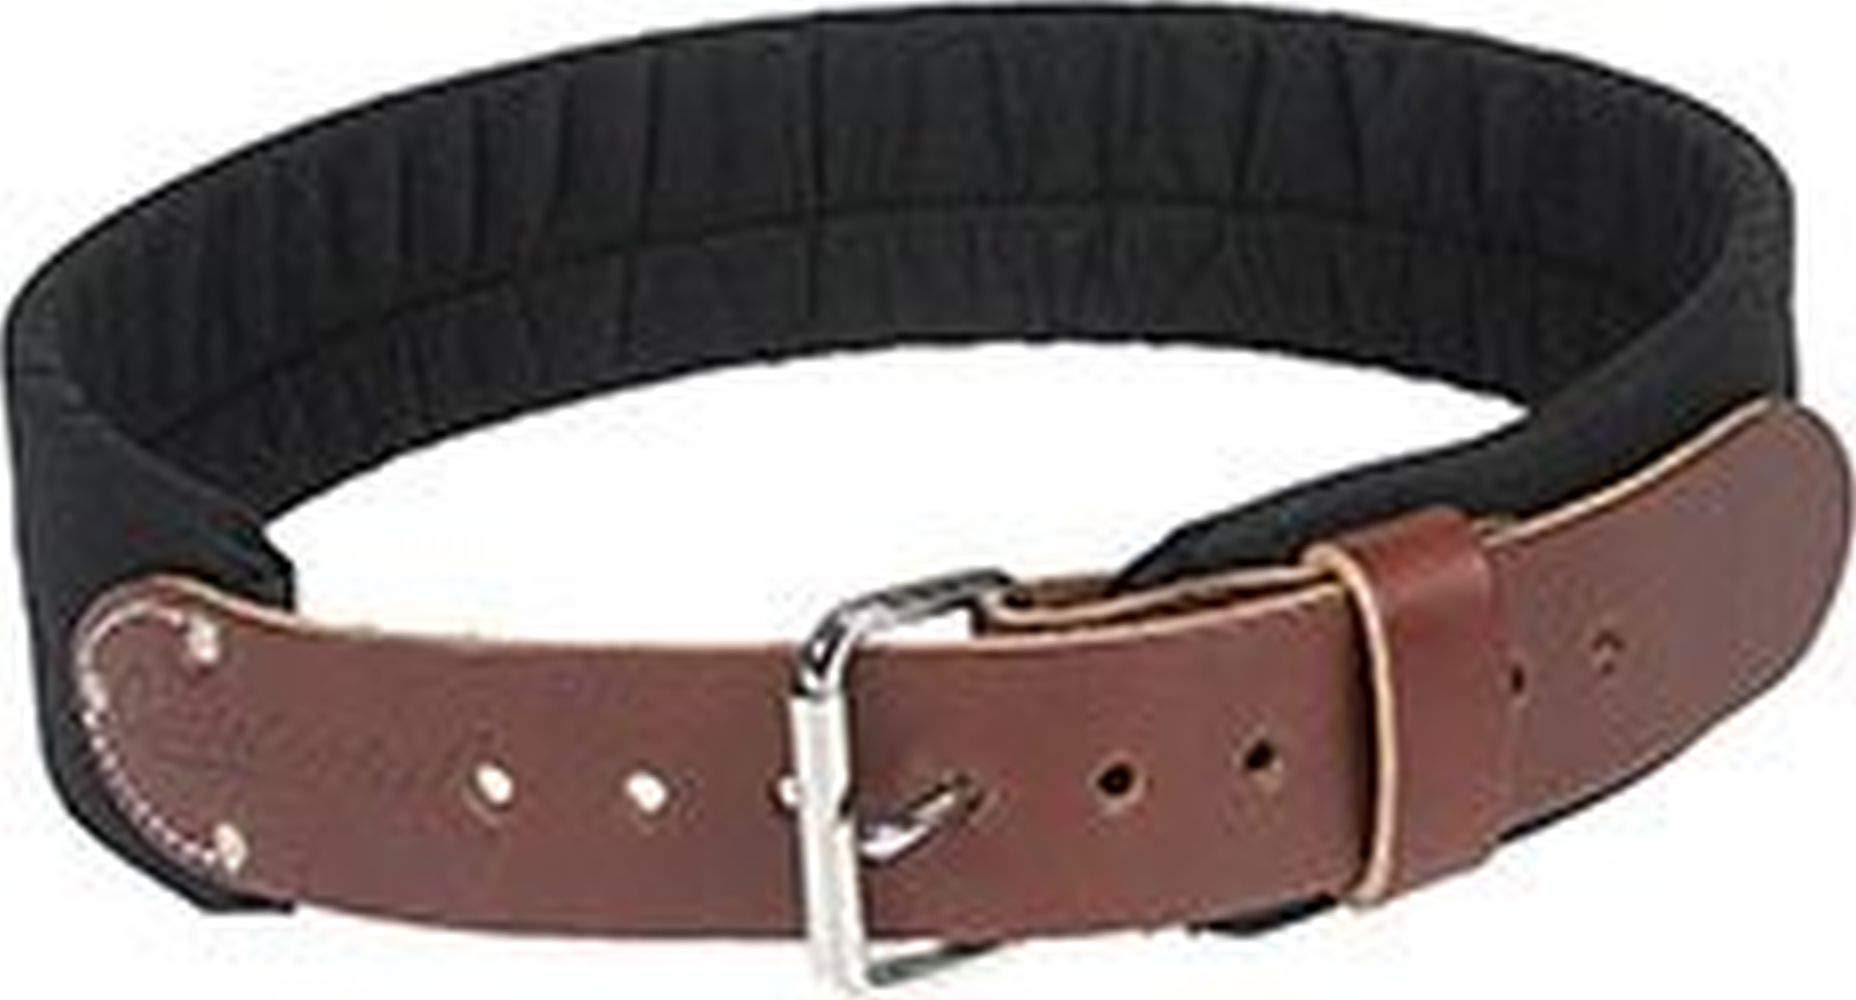 Occidental Leather 8003 M 3in Leather & Nylon by Occidental Leather